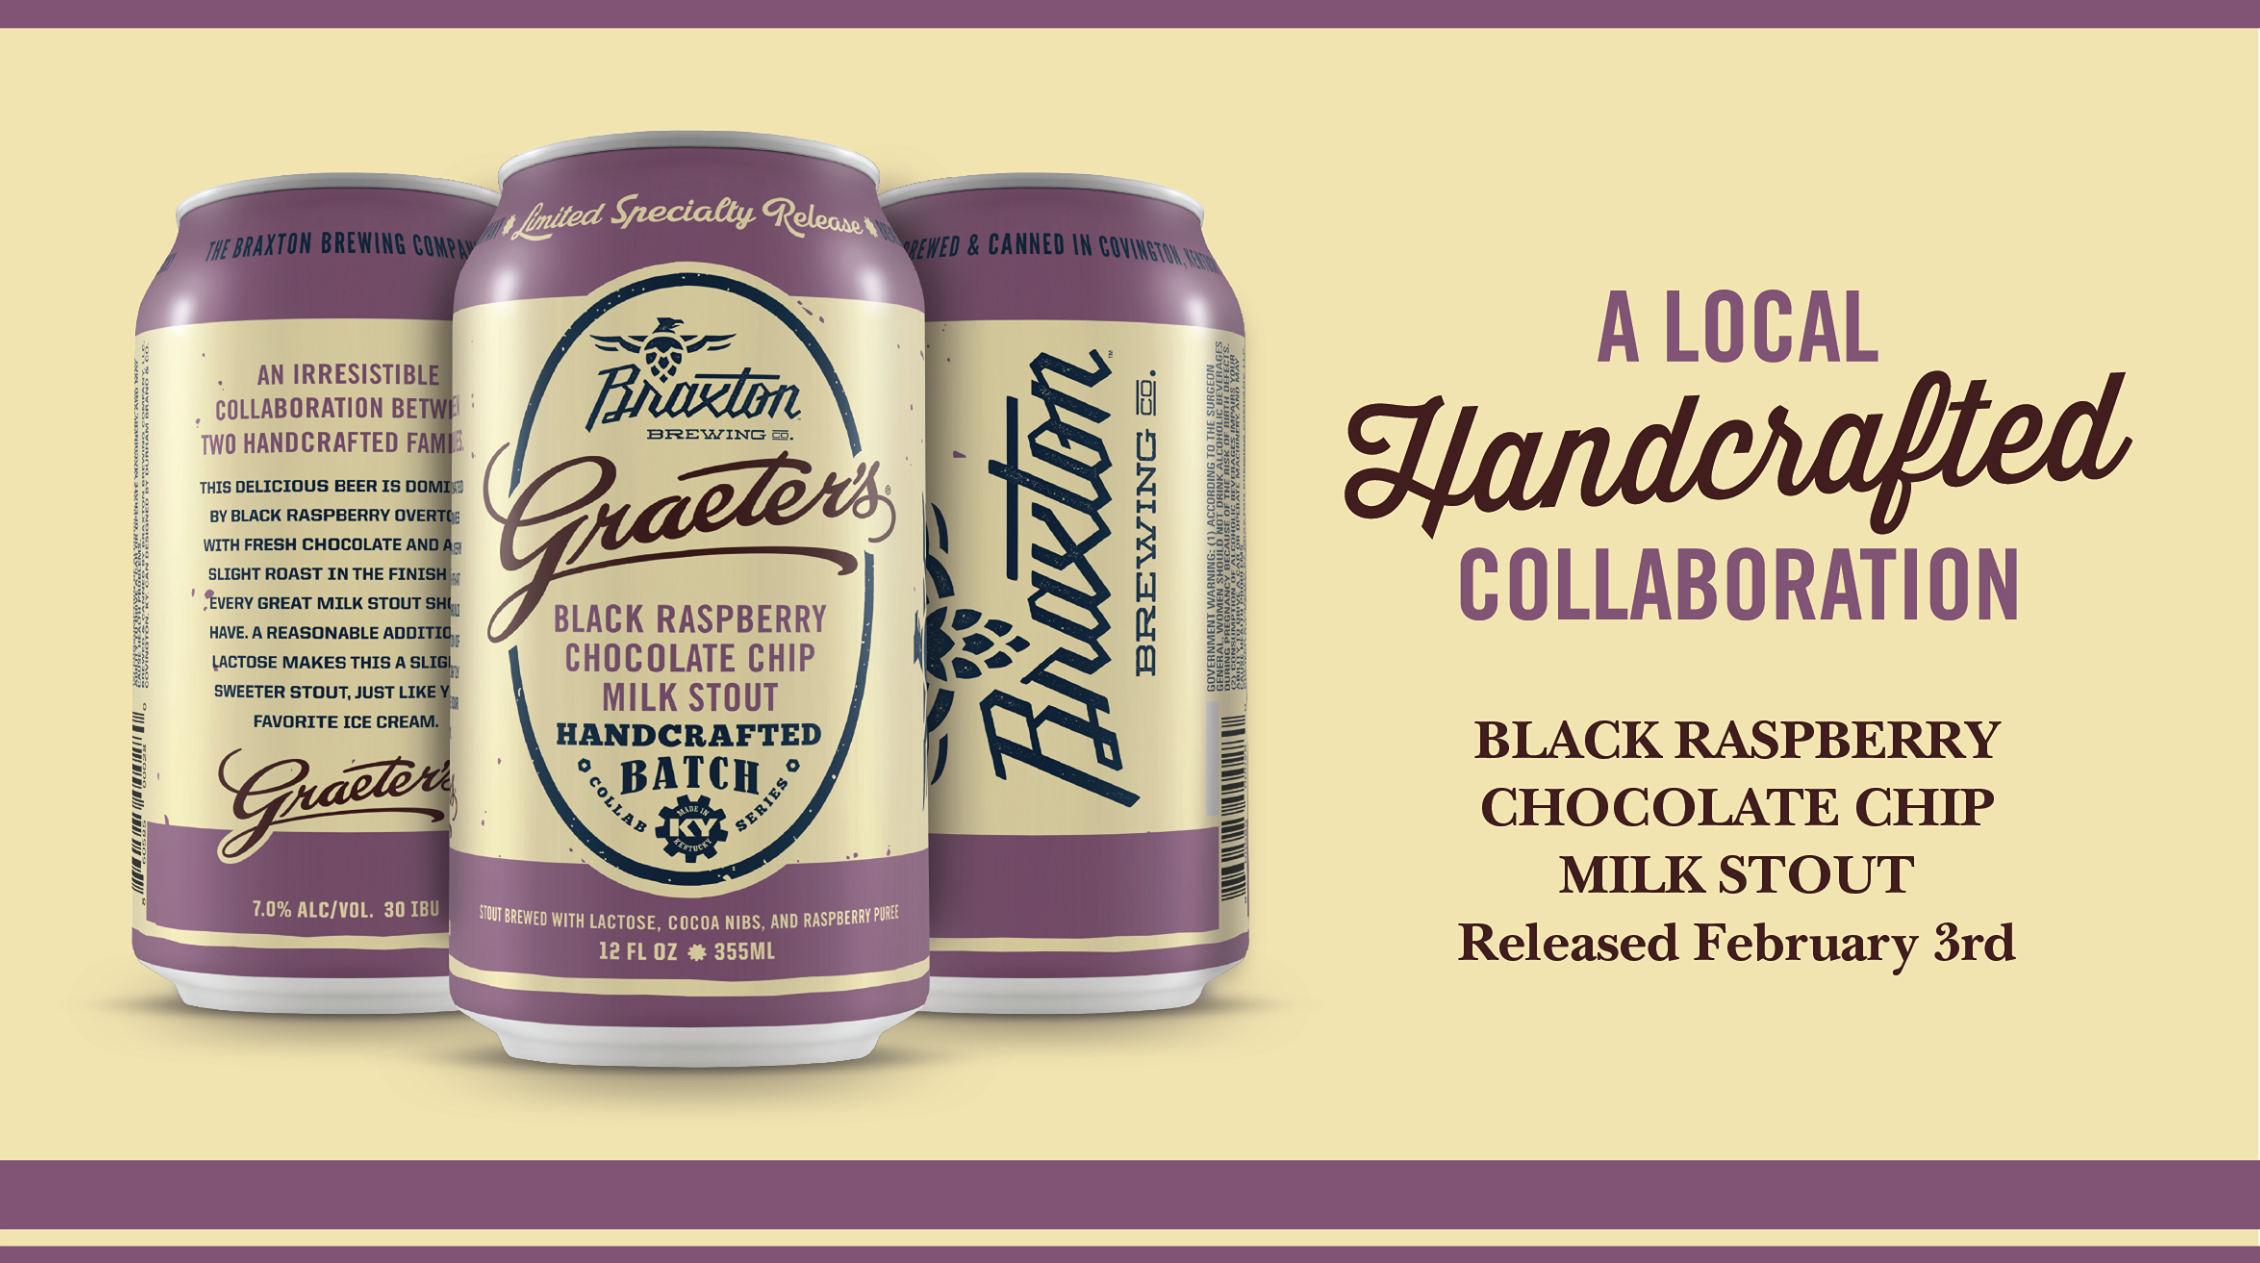 Braxton Brewing Graeter's Black Raspberry Chocolate Chip Milk Stout